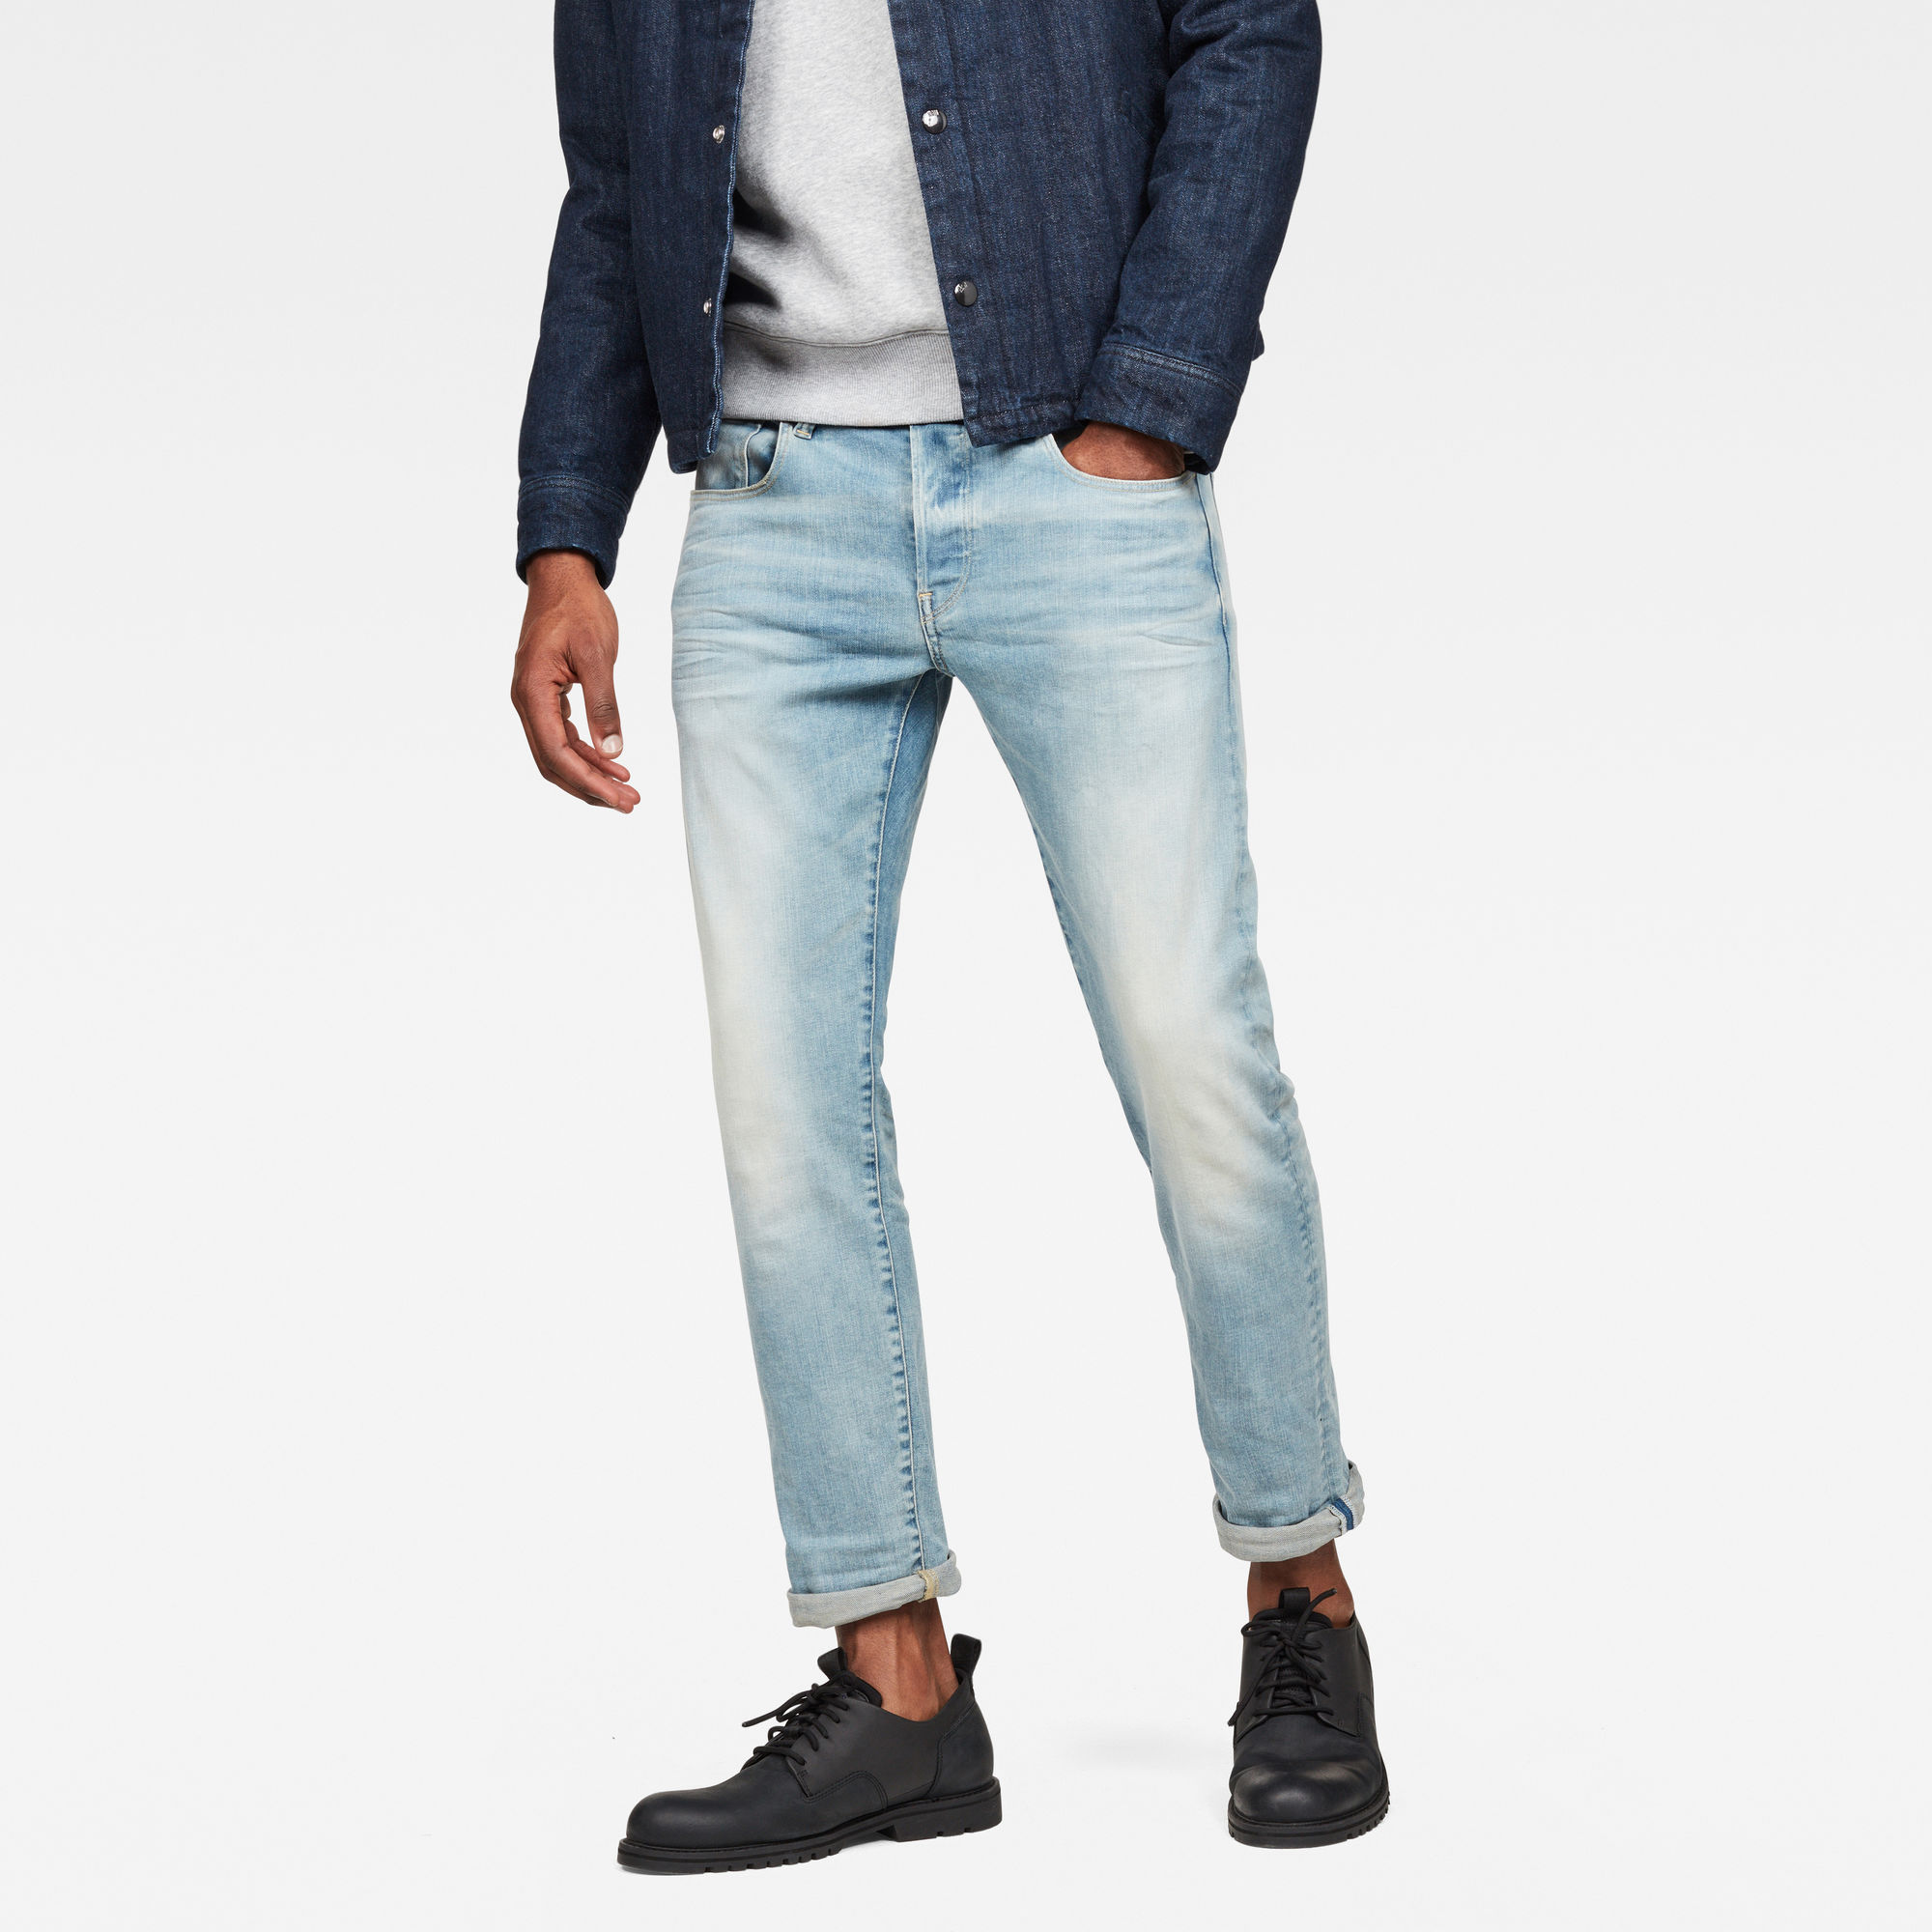 Image of G Star Raw 3301 Deconstructed Slim Jeans